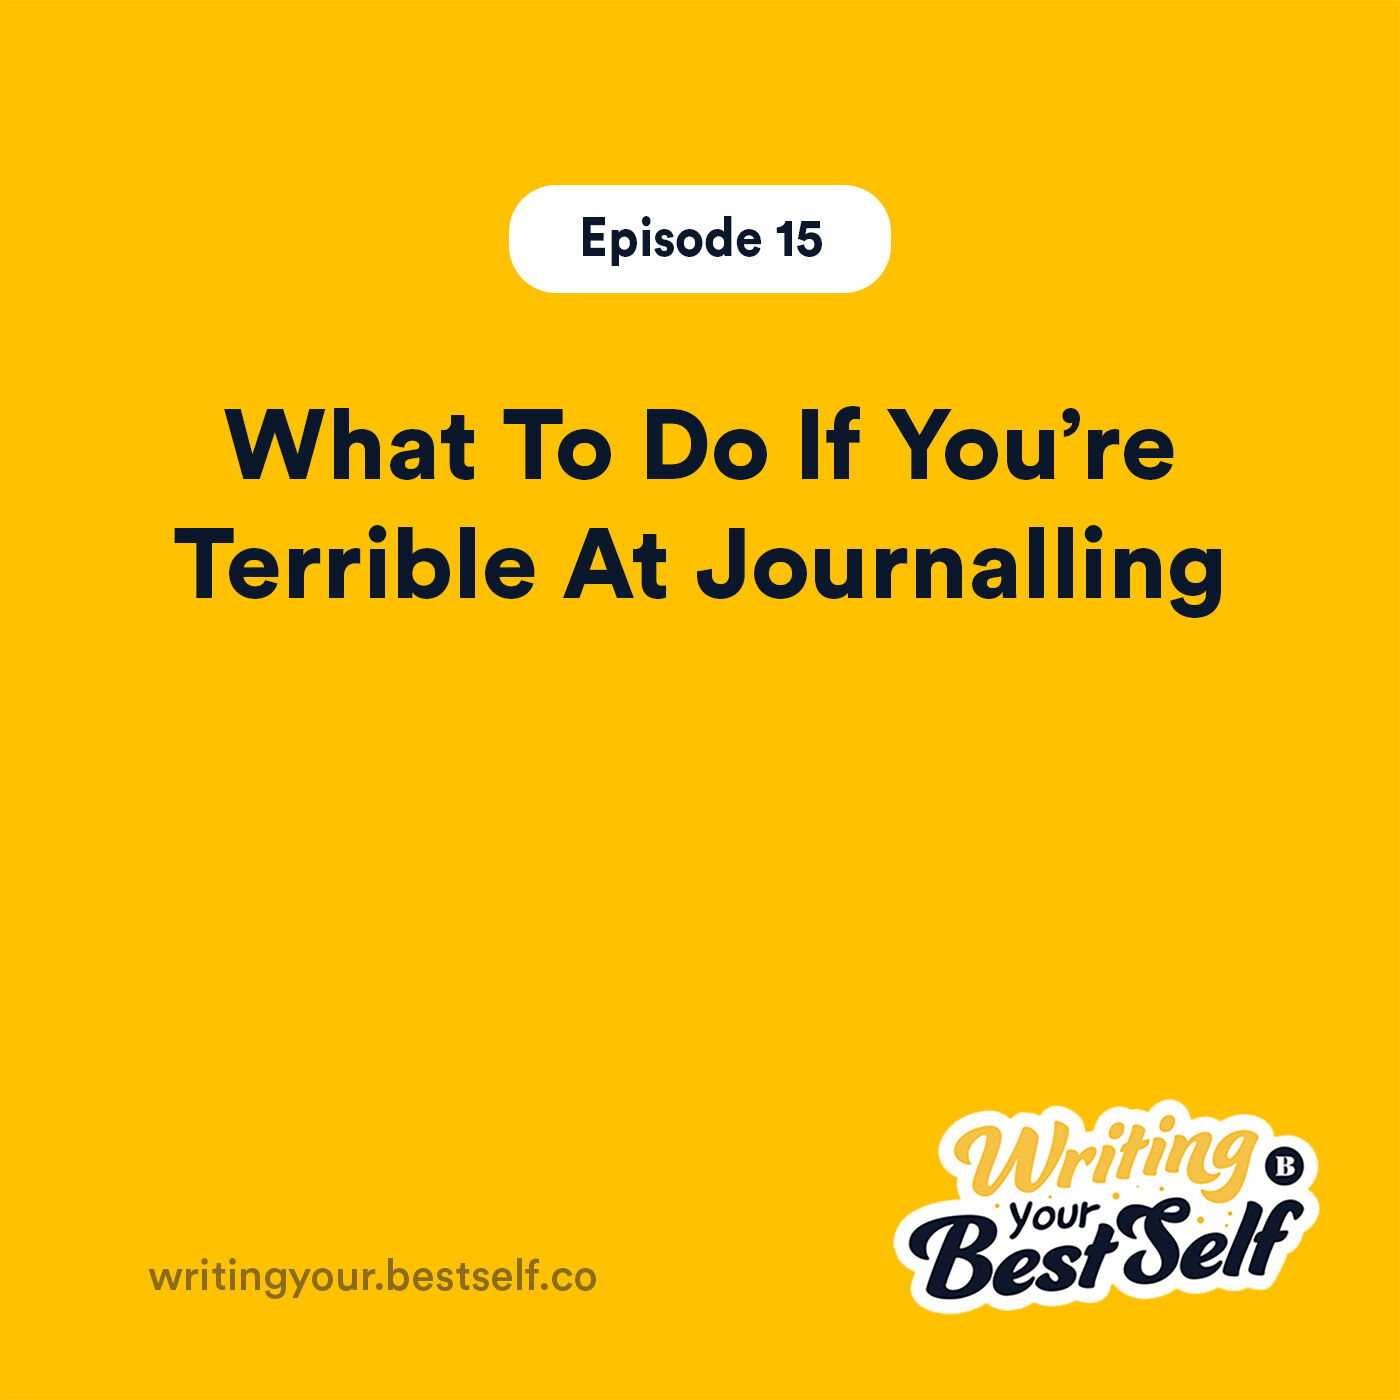 What To Do If You're Terrible At Journalling